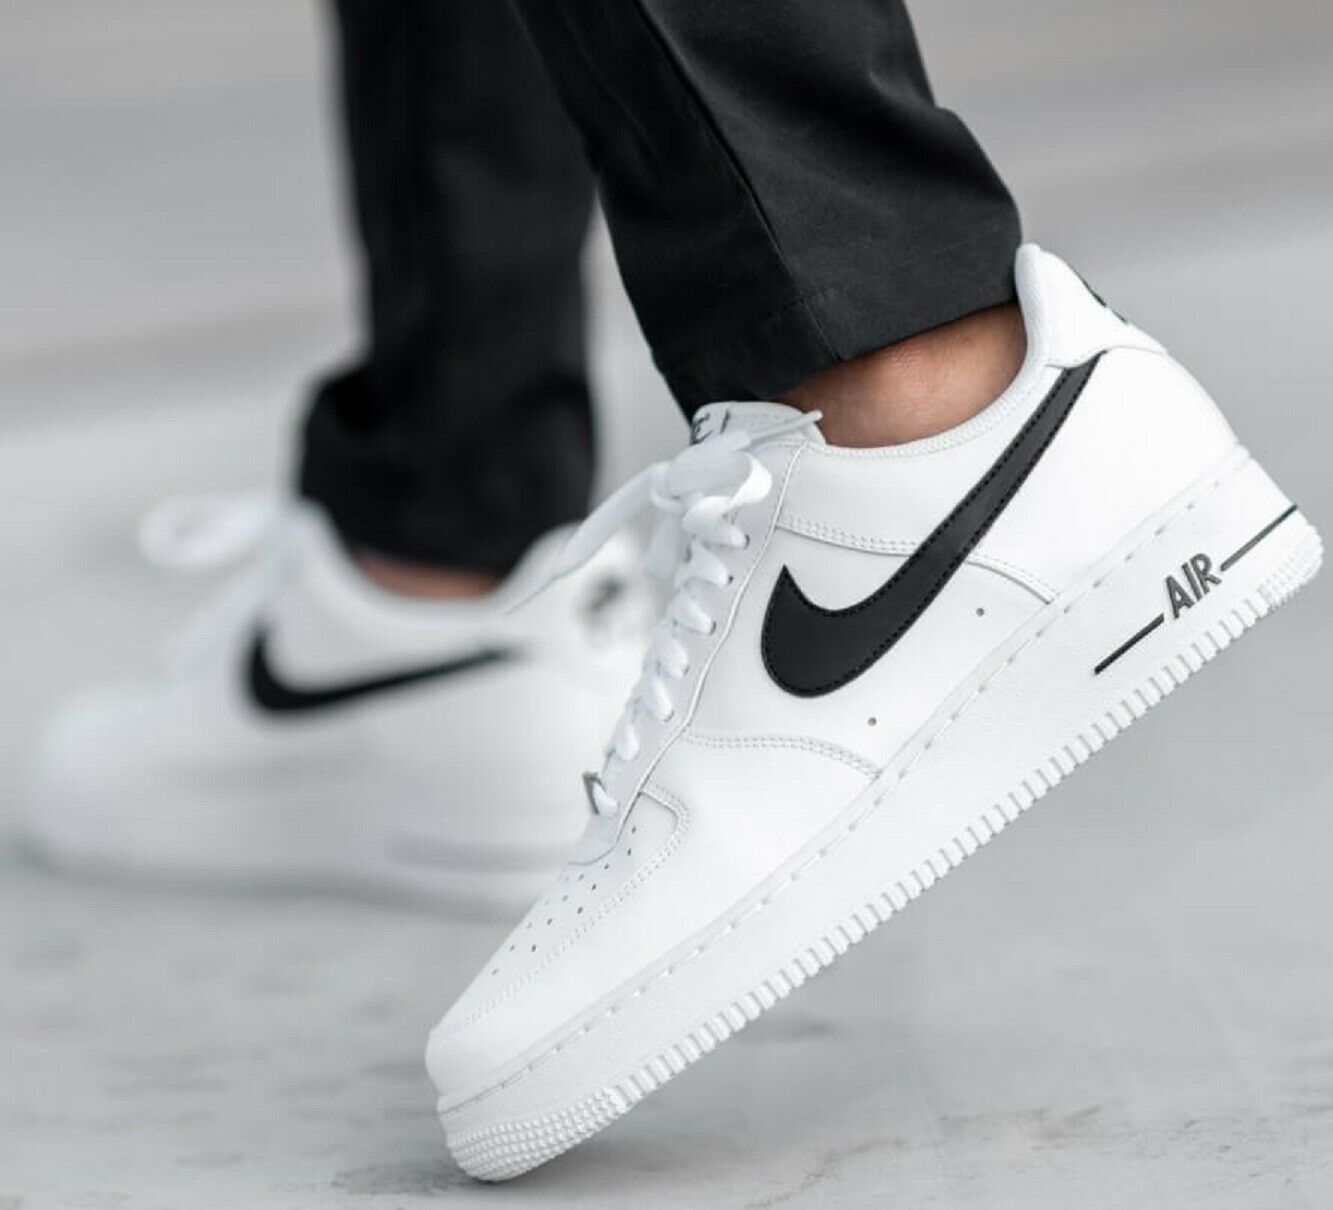 Nike Air Force One 1 Low AN20 White Black Sneakers Men's Lifestyle Comfy Shoes